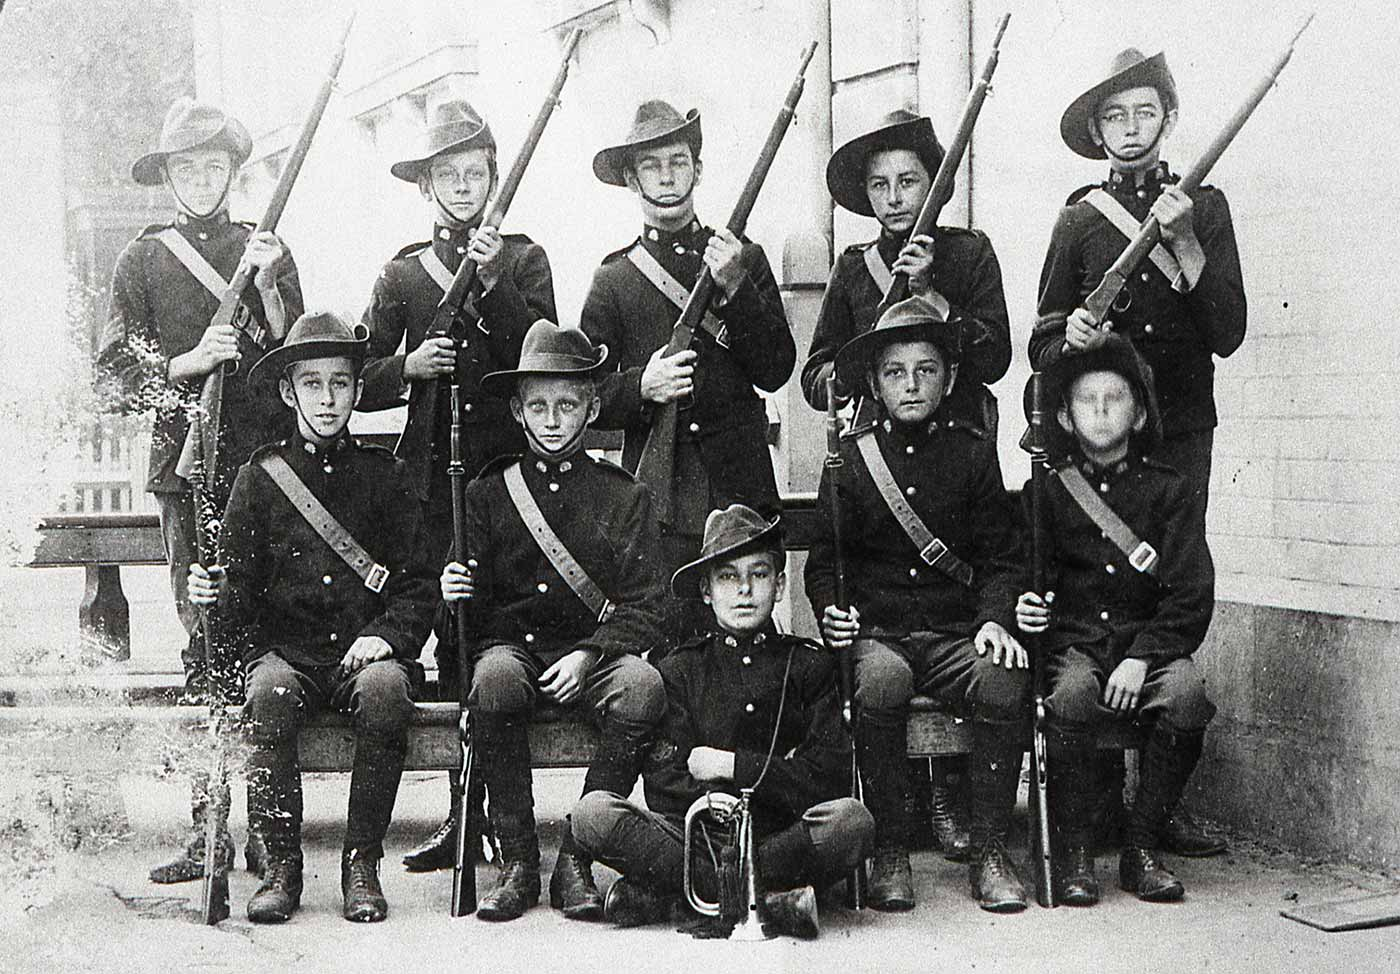 Black and white photograph showing a group of boys dressed in military uniforms and holding guns.